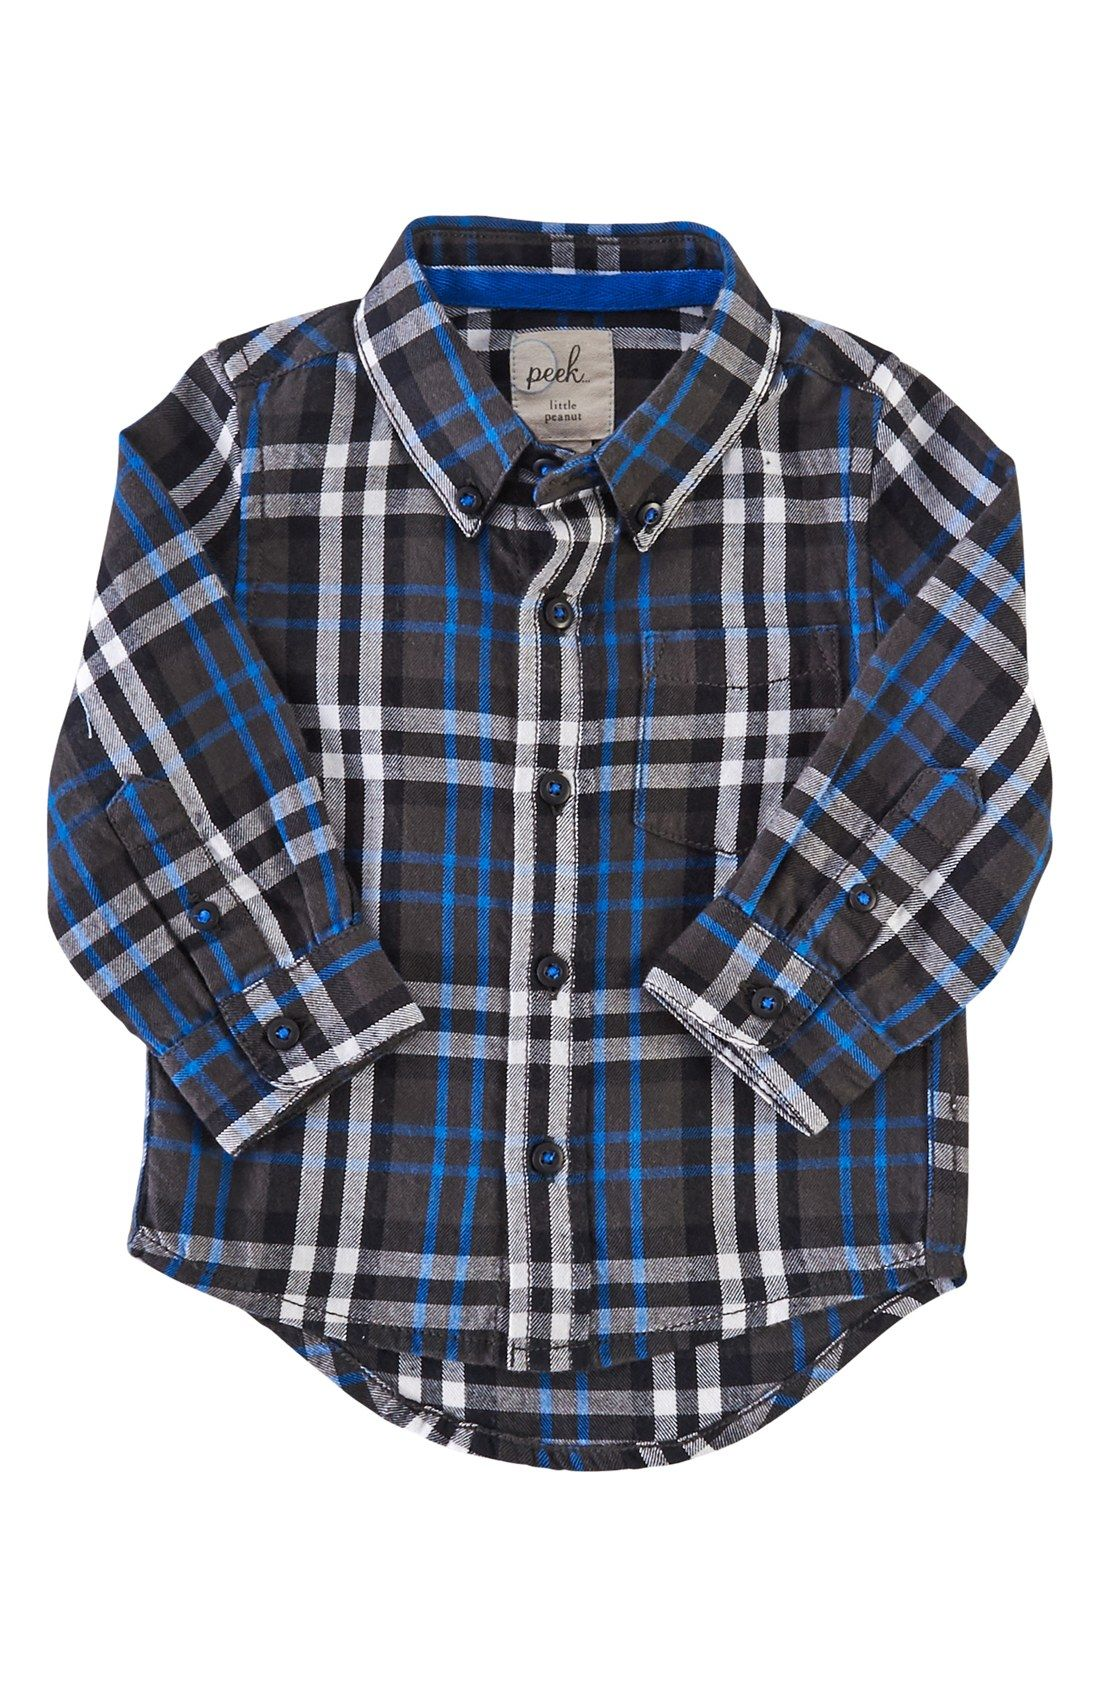 Blue flannel outfits for guys  Peek uLoganu Plaid Woven Shirt Baby Boys  Style u Fashion